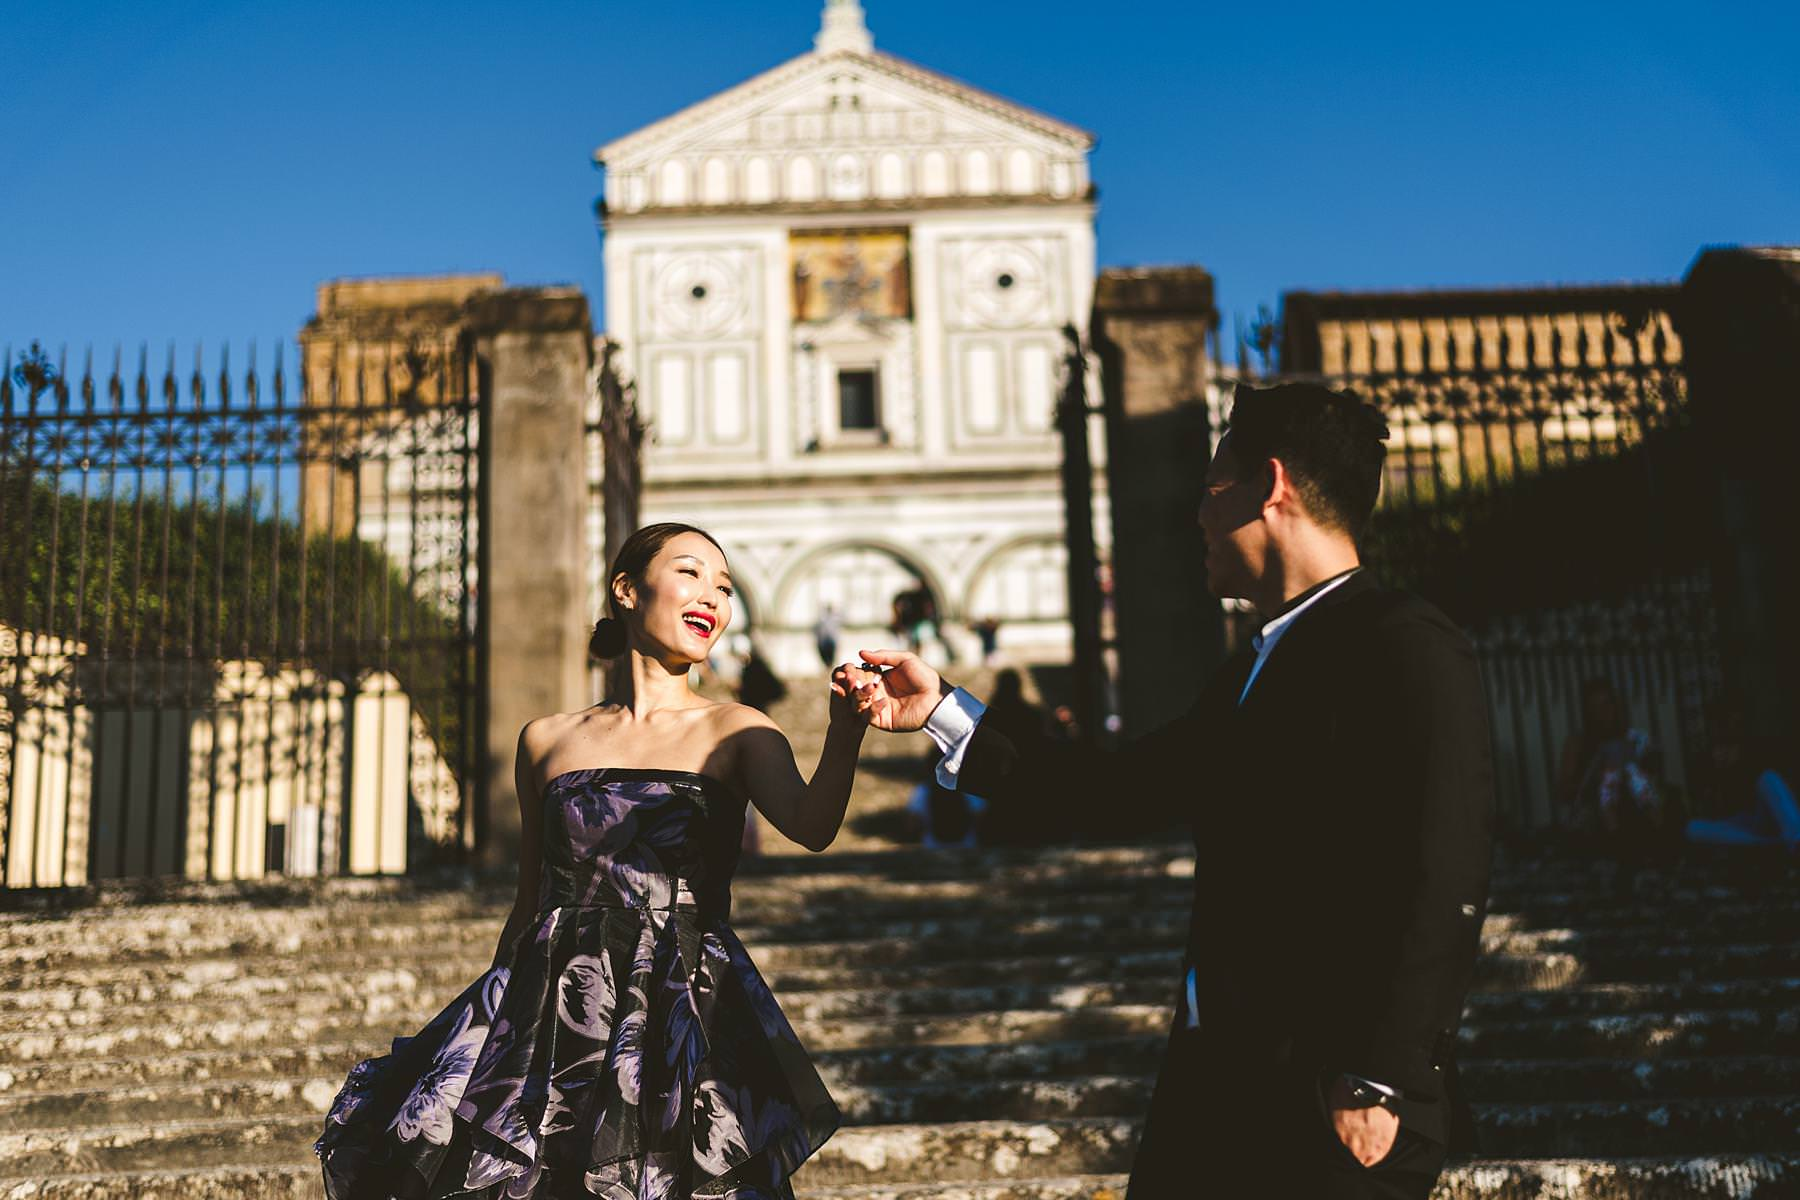 Walking tour in the heart of Florence at most iconic and picturesque spots couple portrait photo shoot